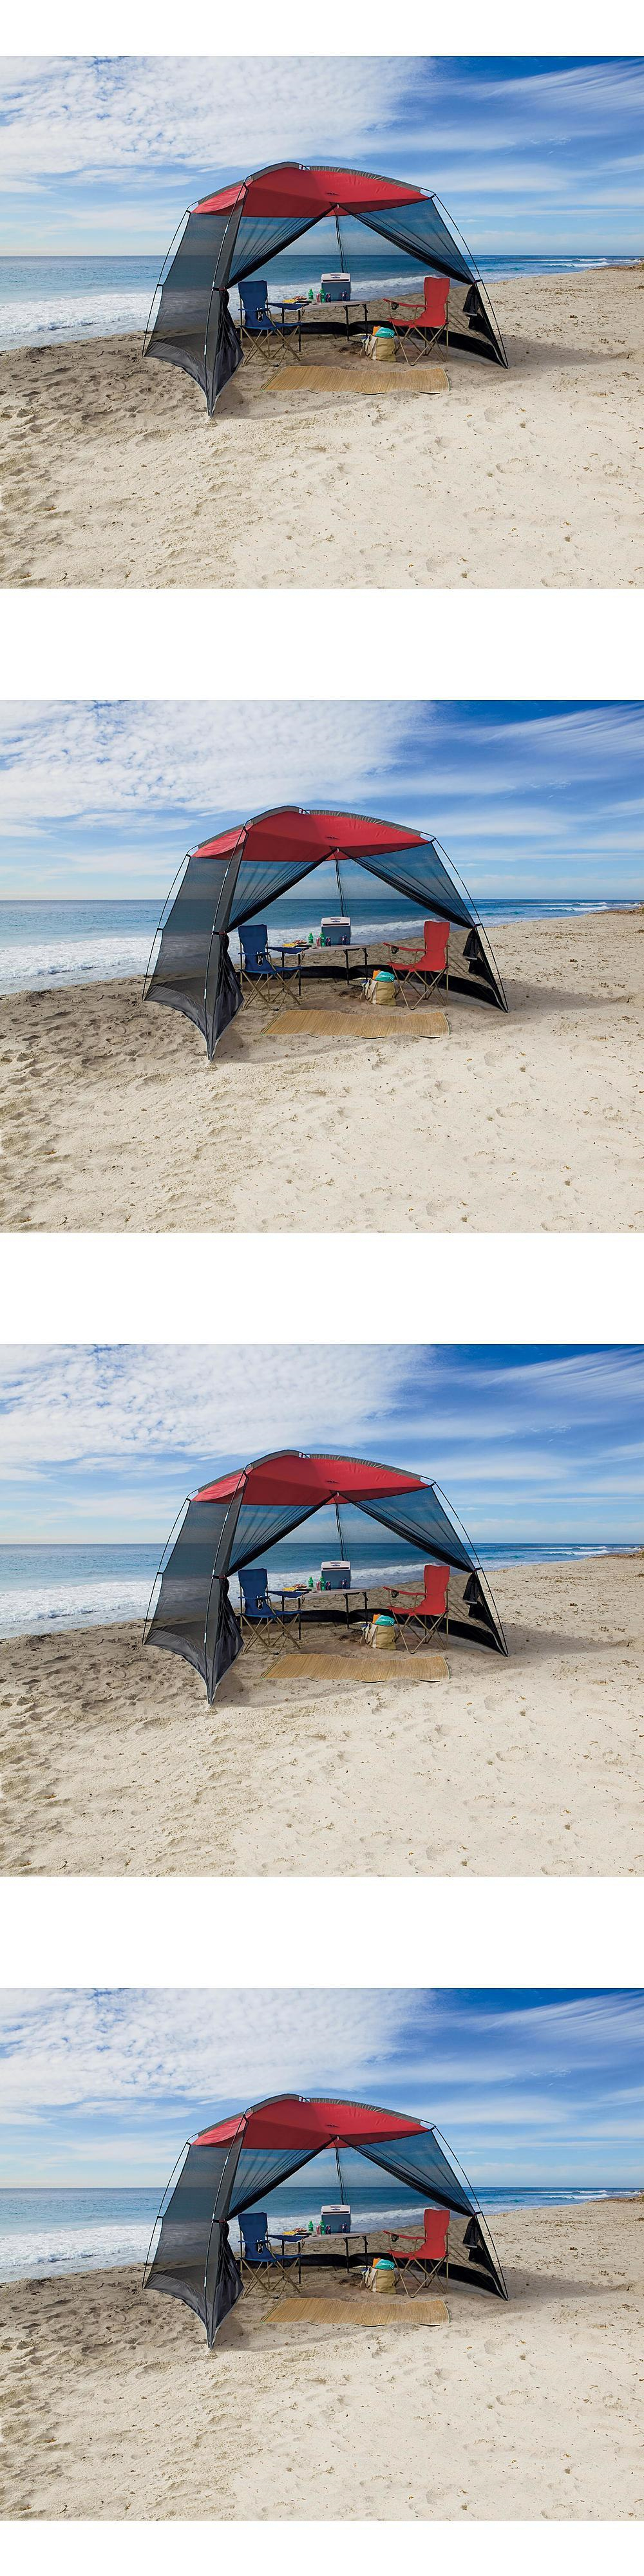 Canopies and Shelters 179011 Beach Canopy Tent Outdoor Sun Shelter C&ing Portable Sun Shade Cover : cover it tents - memphite.com